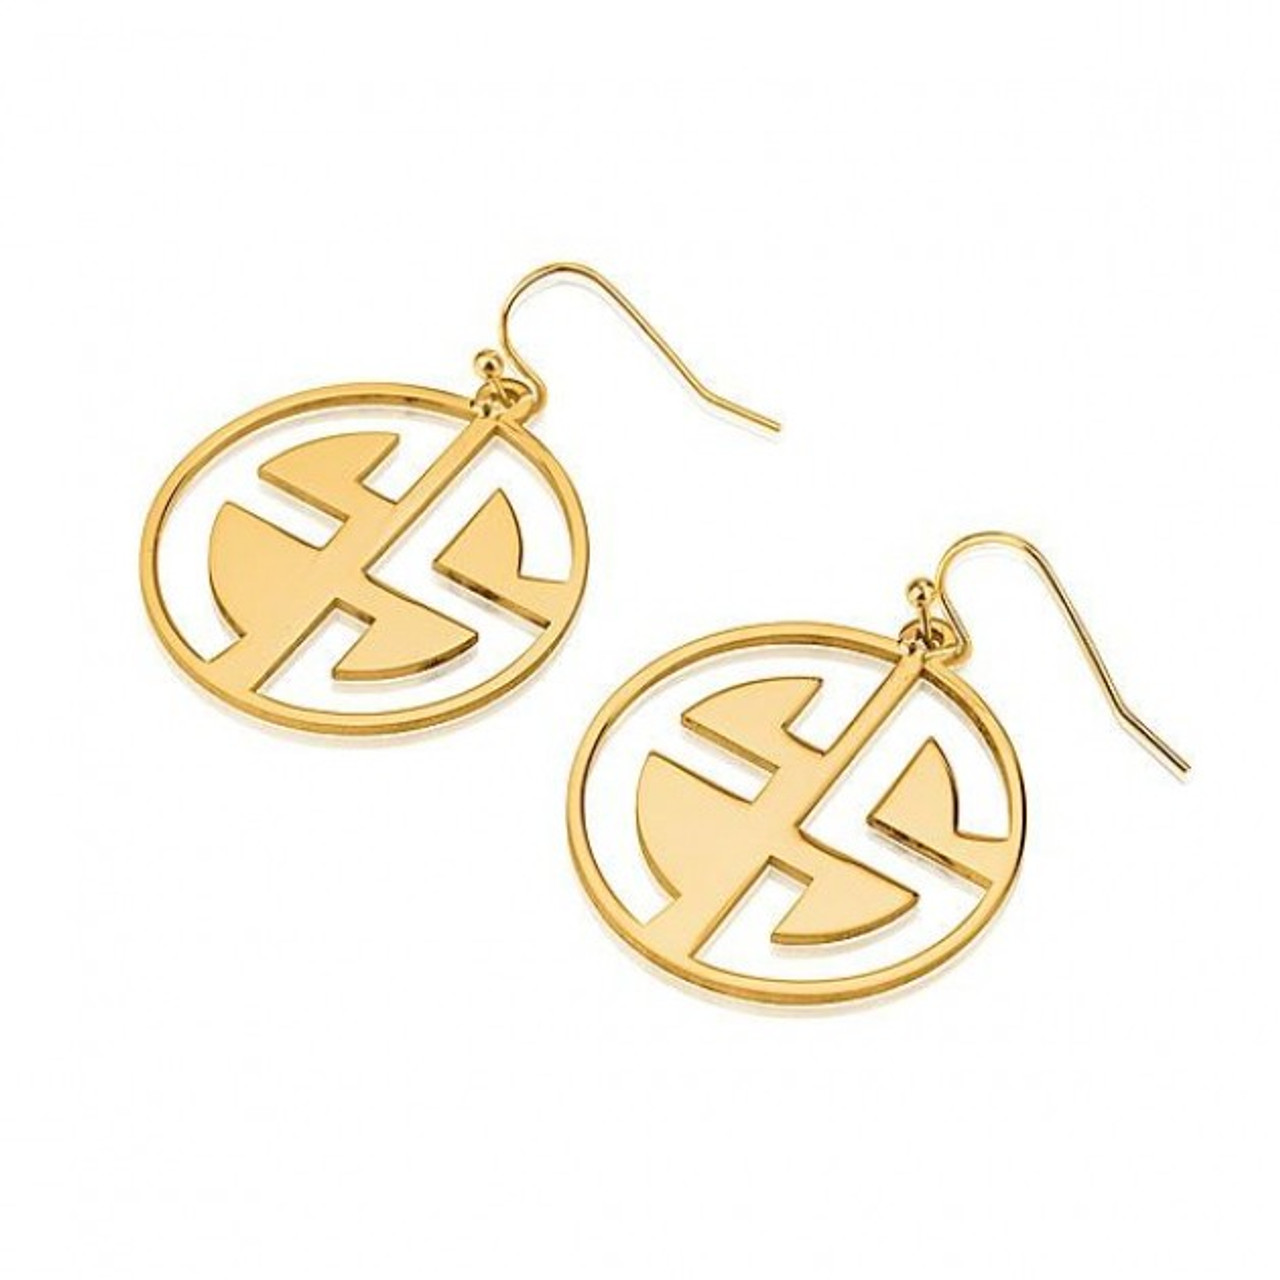 geometricearringsengraved earrings engraved ottava designs geometric monogram